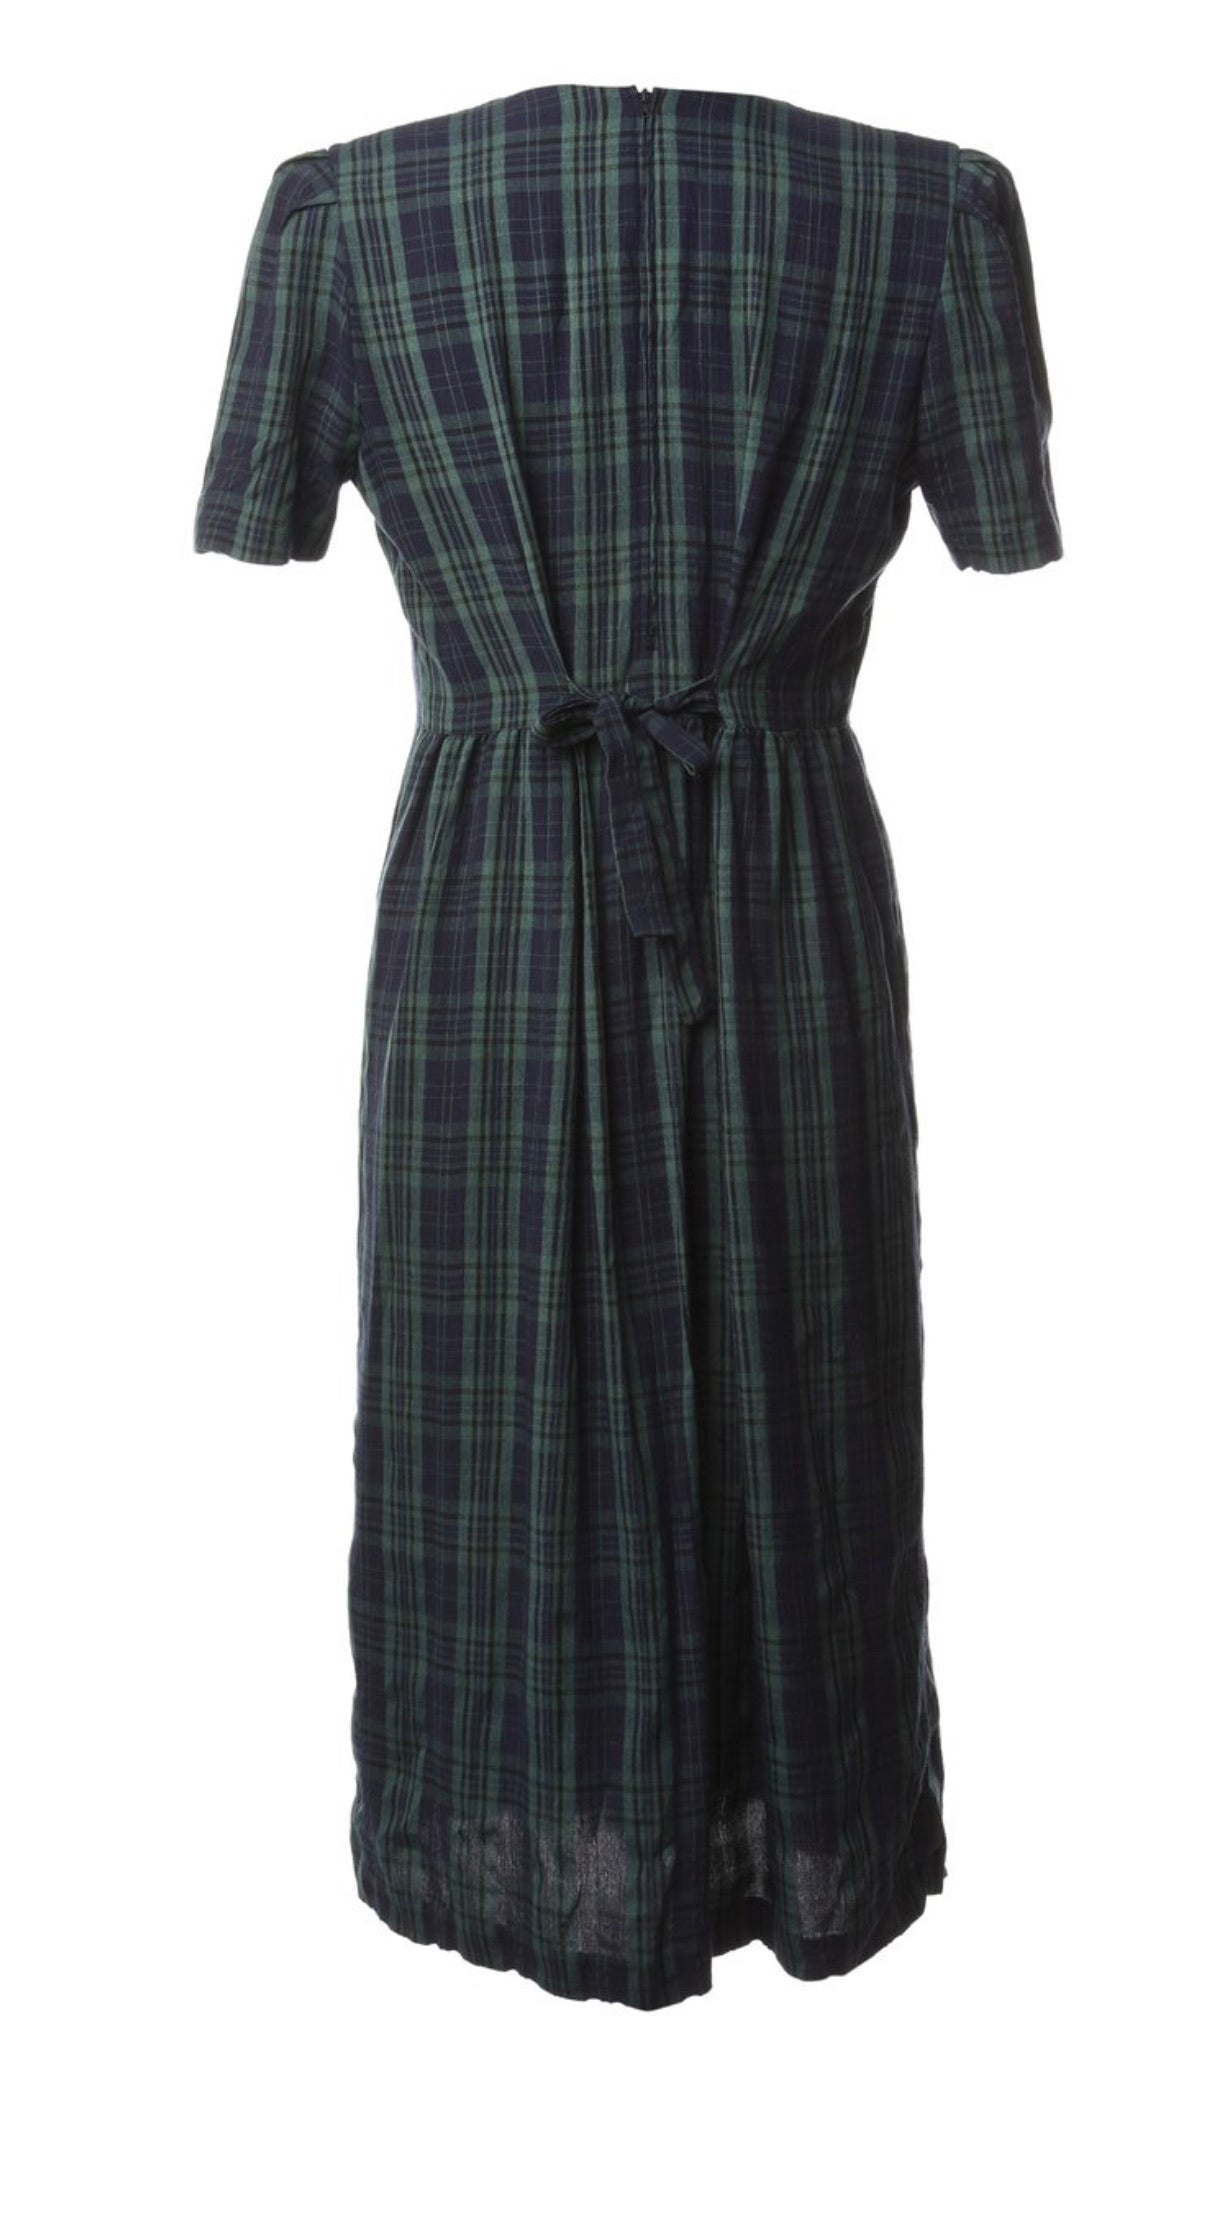 The Roma Tartan Midi Dress